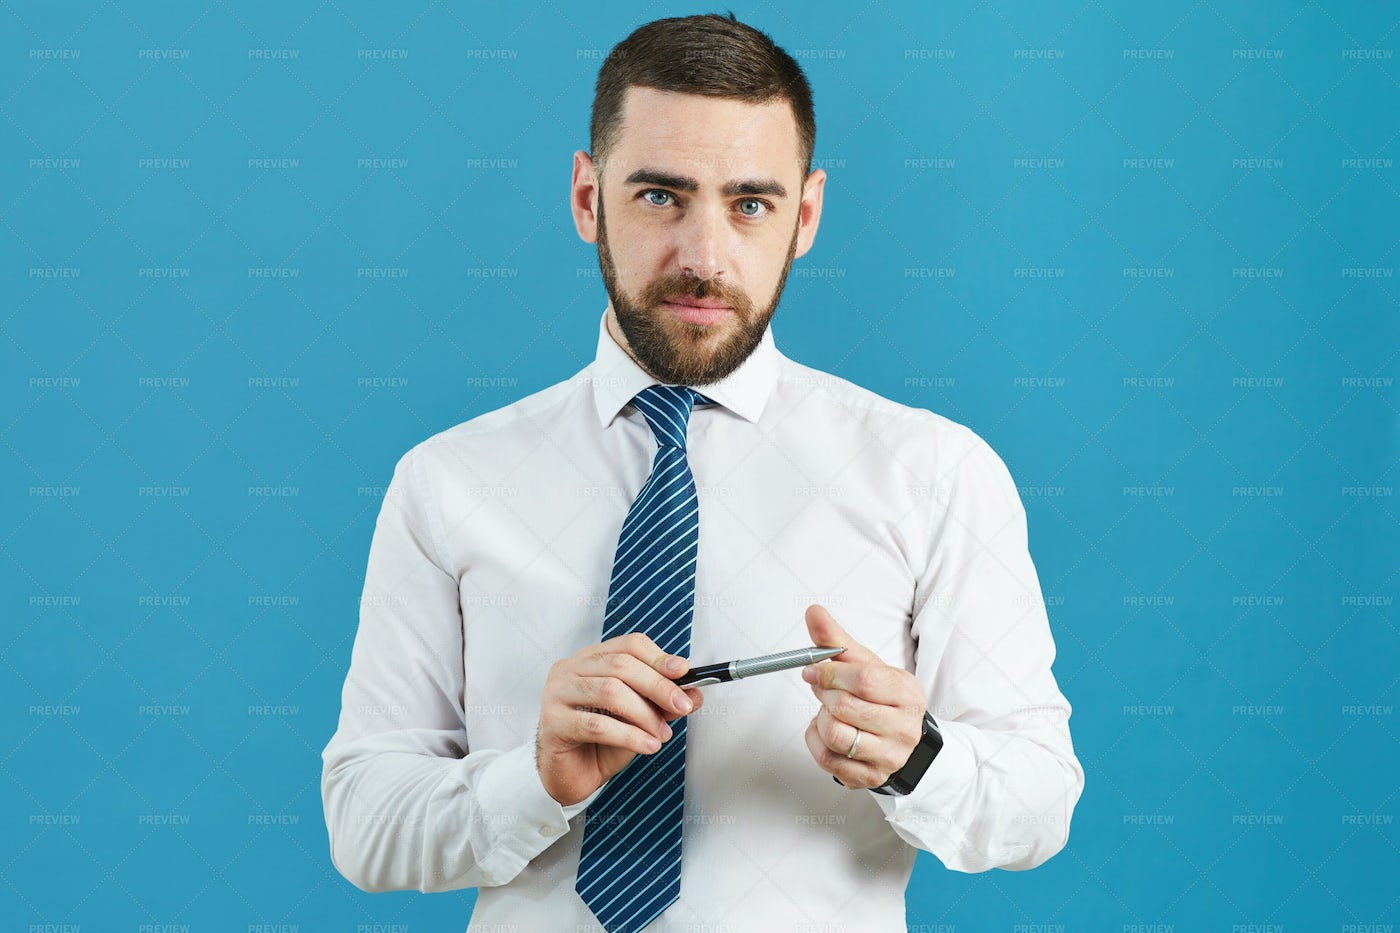 Business Analyst Twisting Pen: Stock Photos